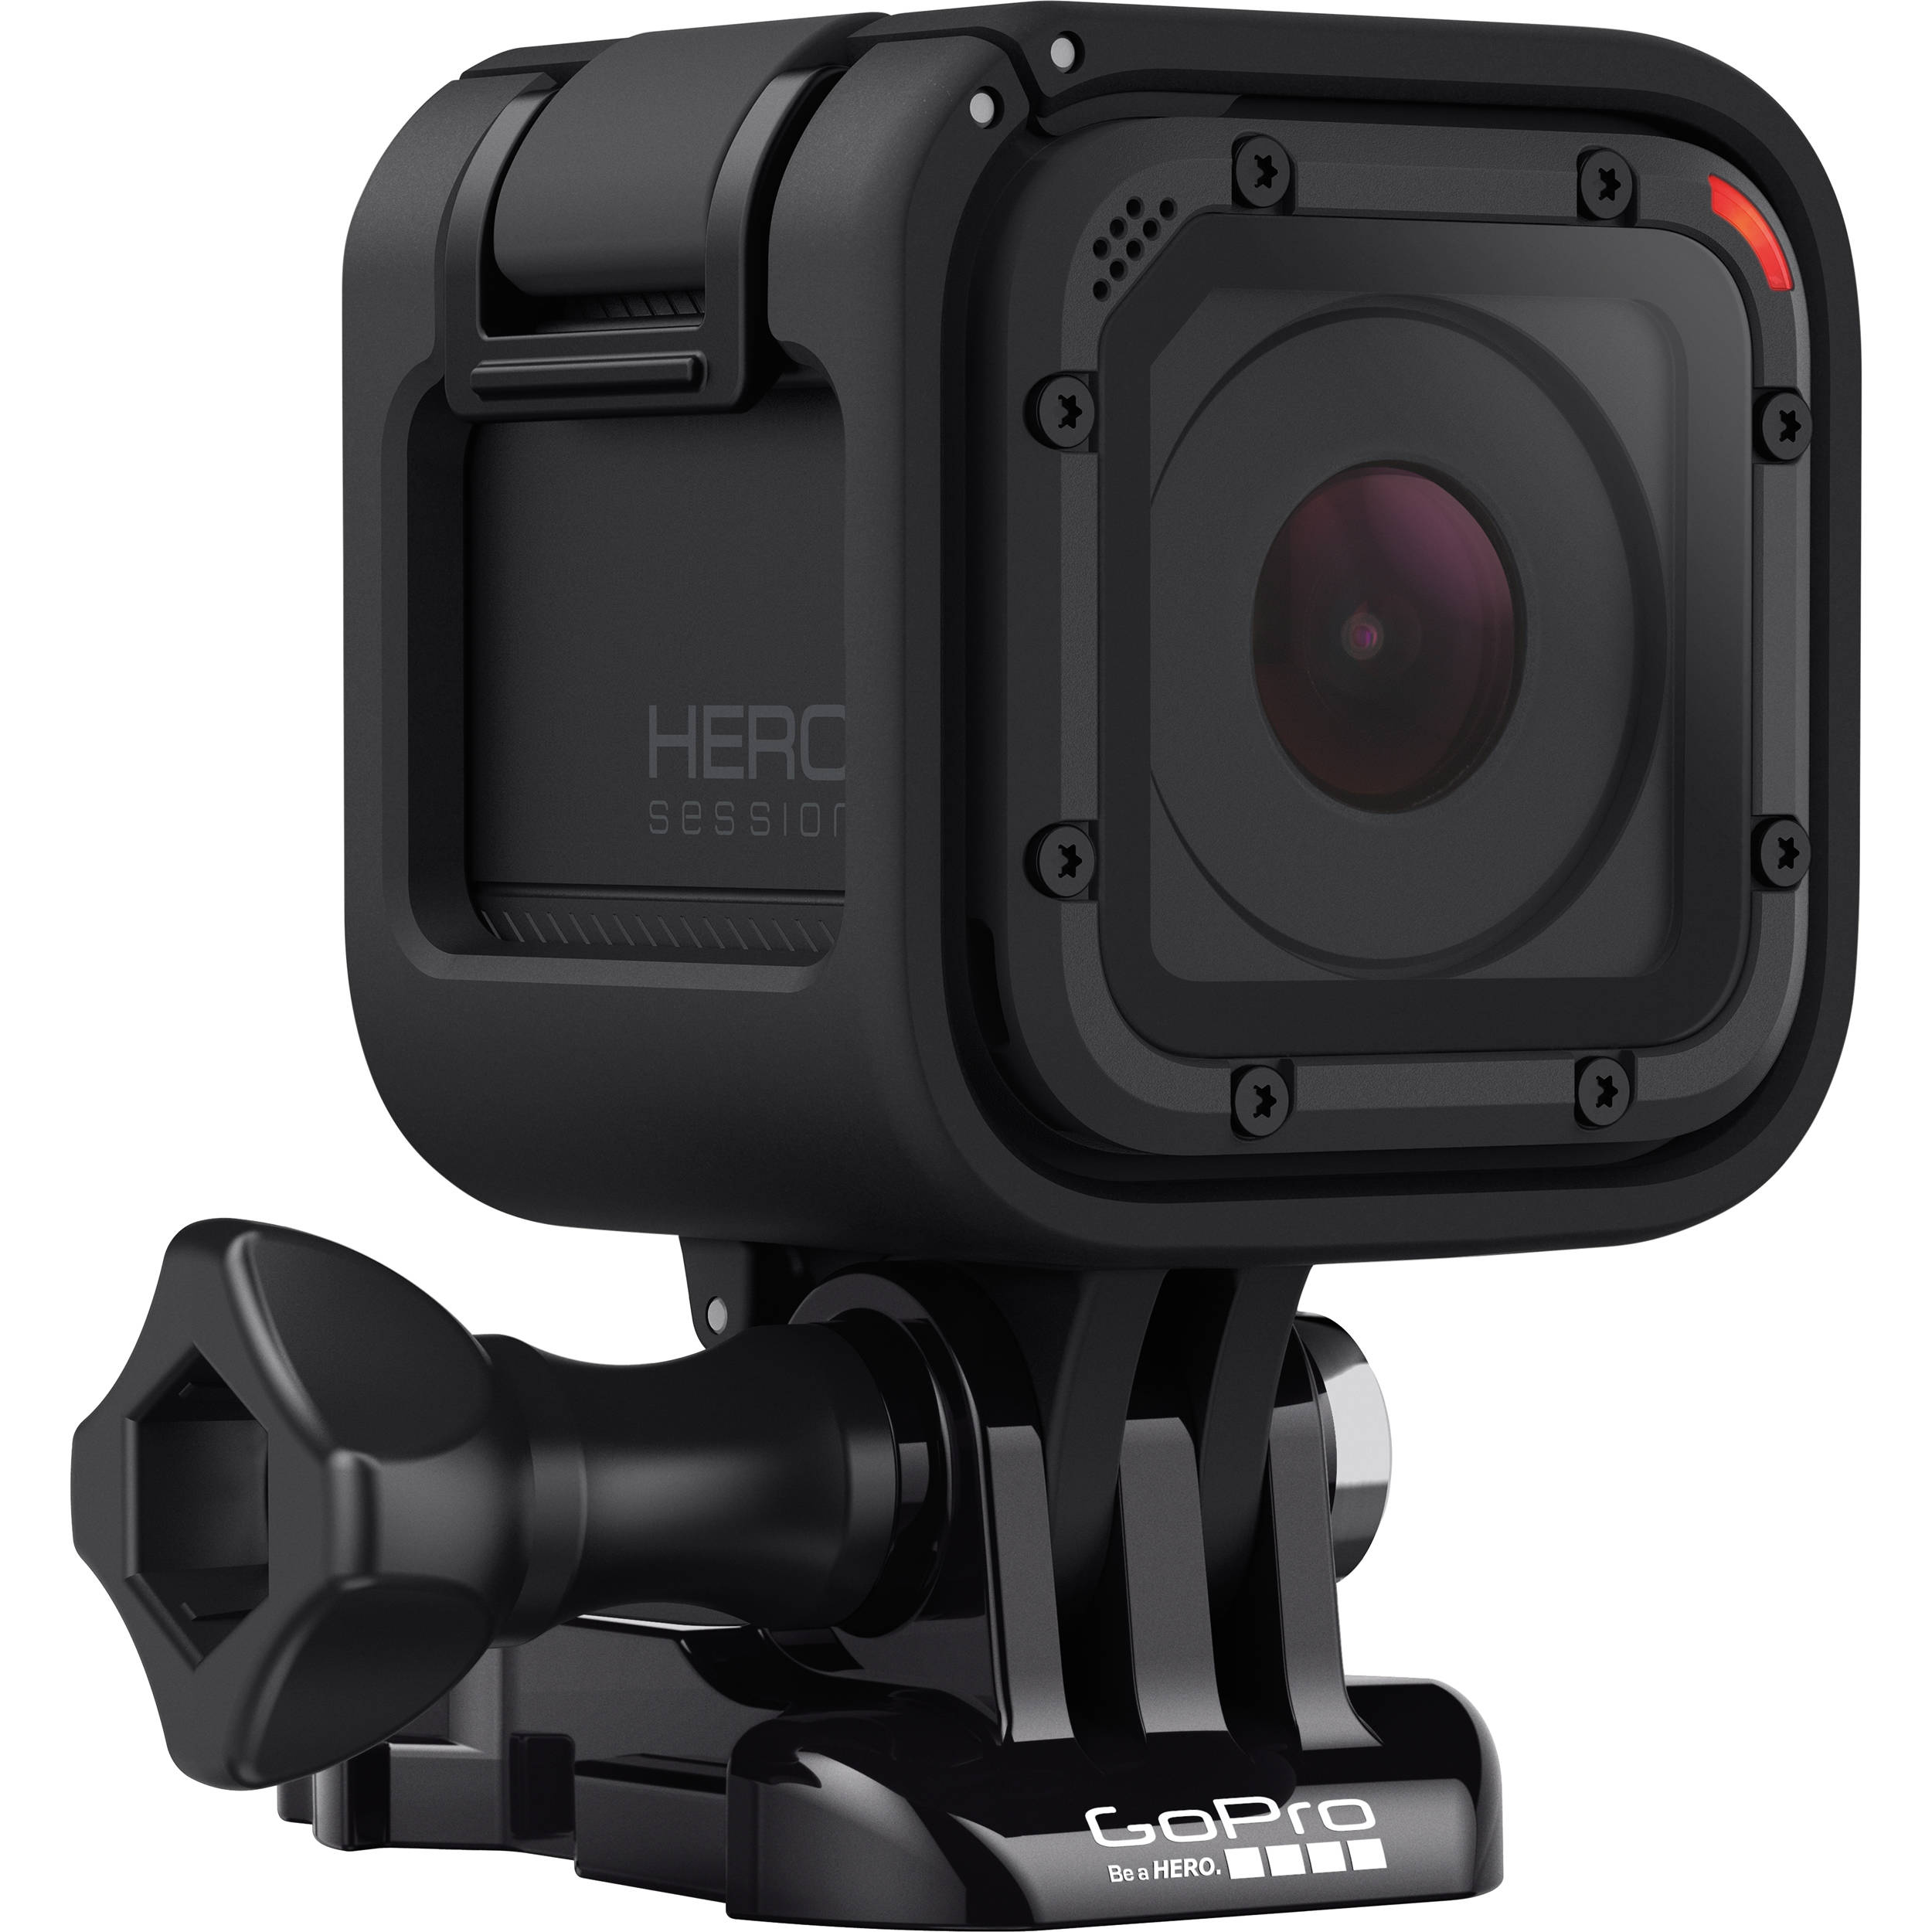 GoPro HERO Session CHDHS-102 B\u0026H Photo Video